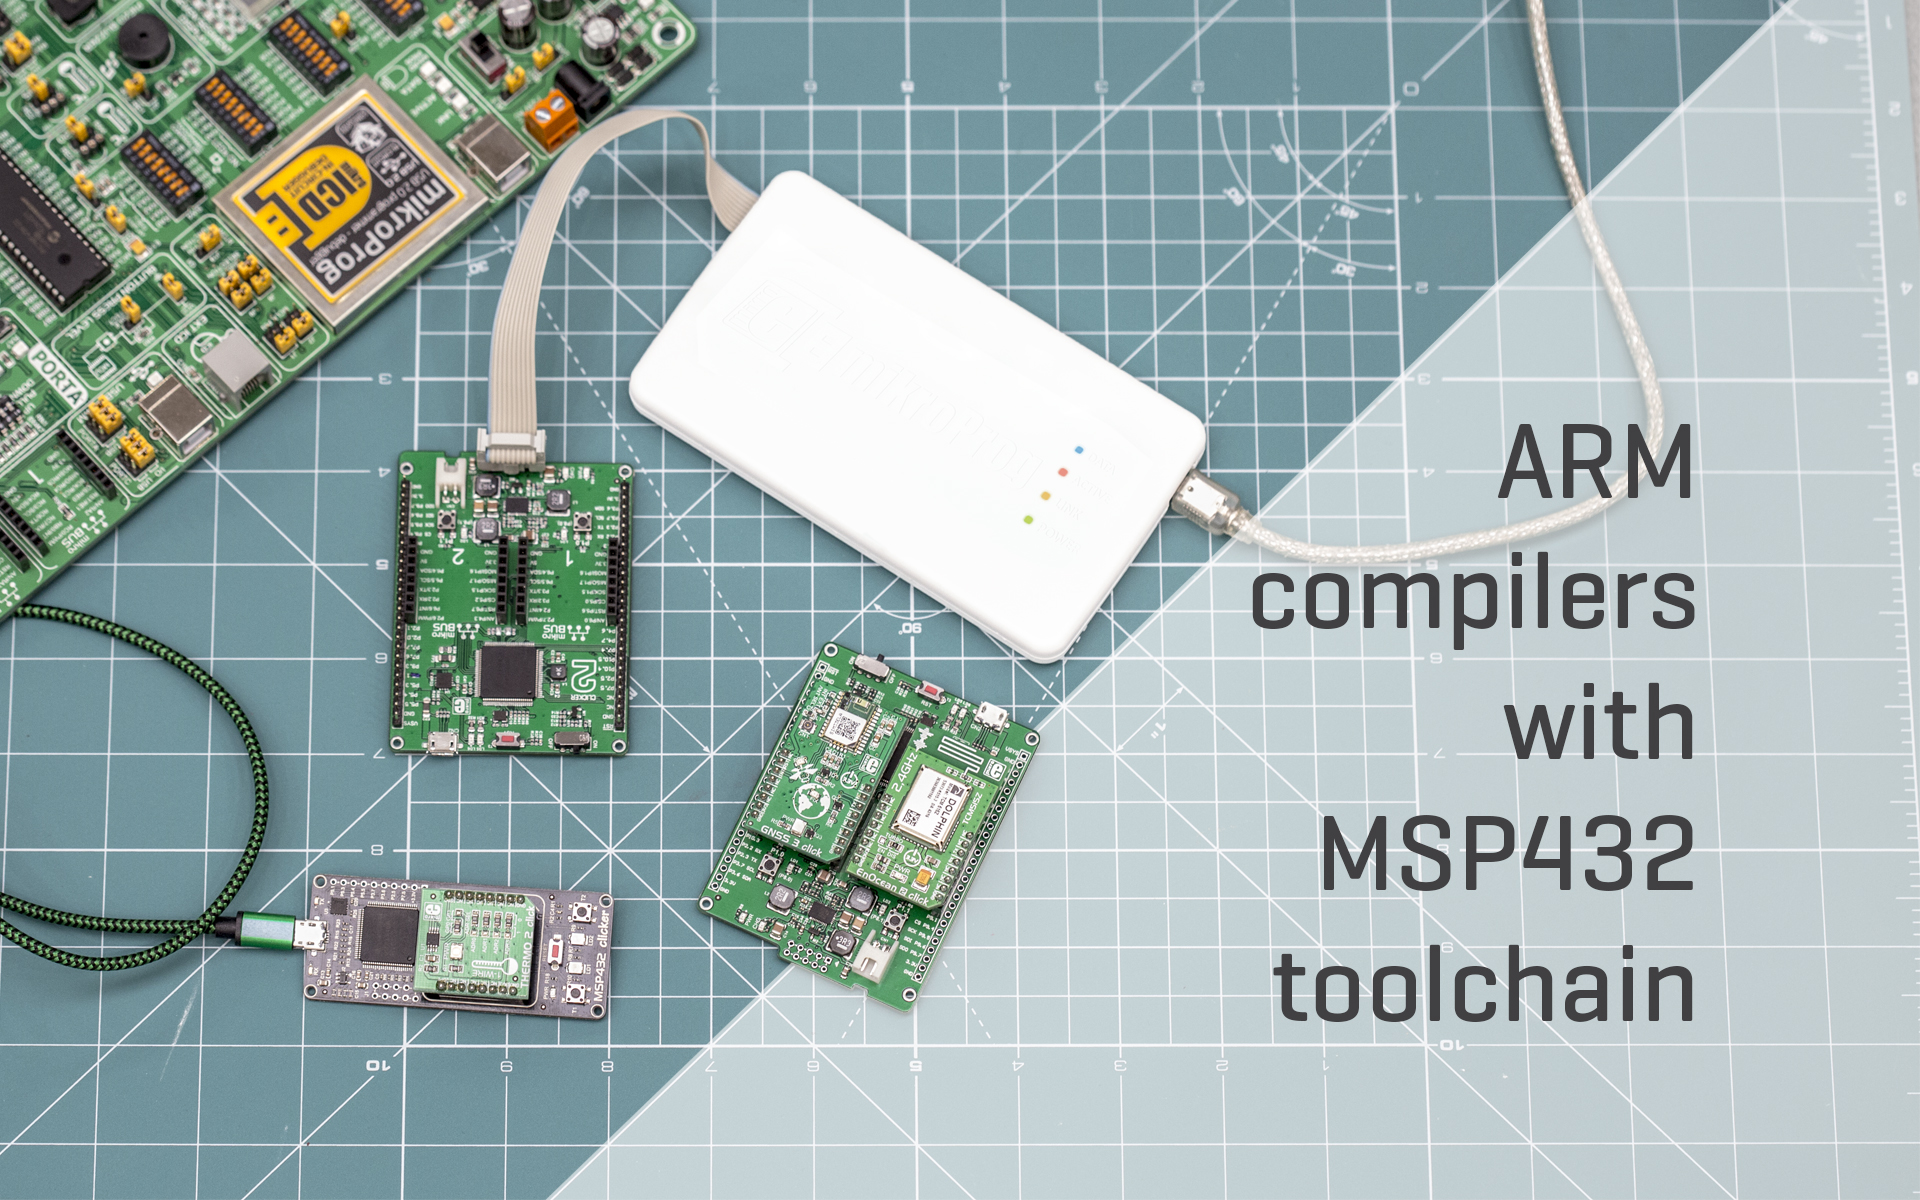 New release of the ARM compilers with MSP432 toolchain